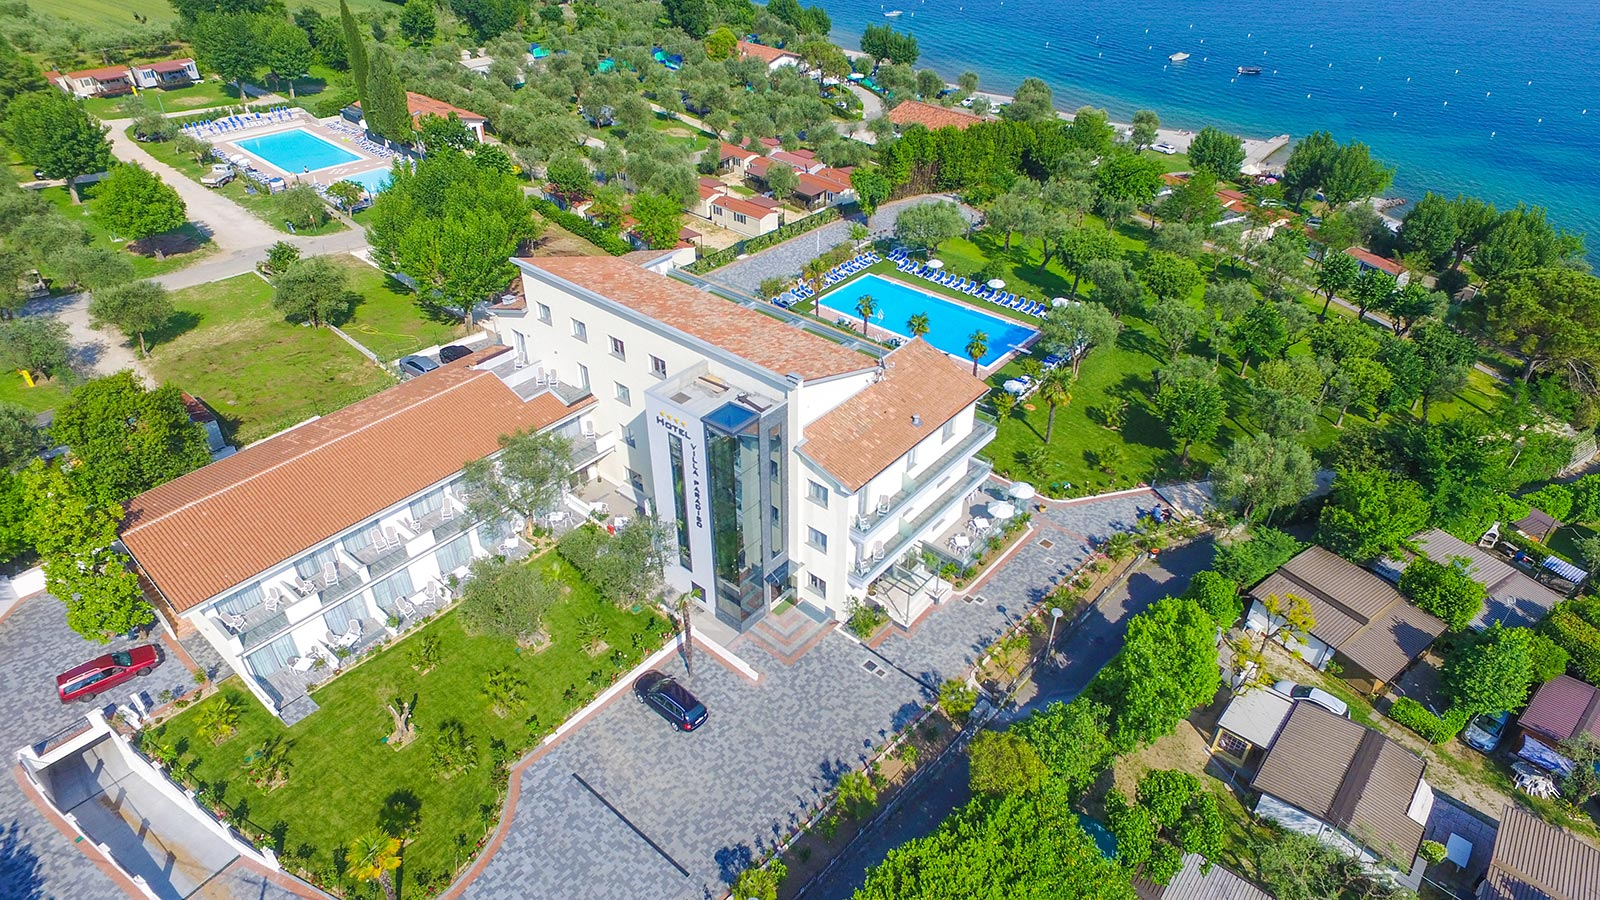 Villa Paradiso Suite view from above